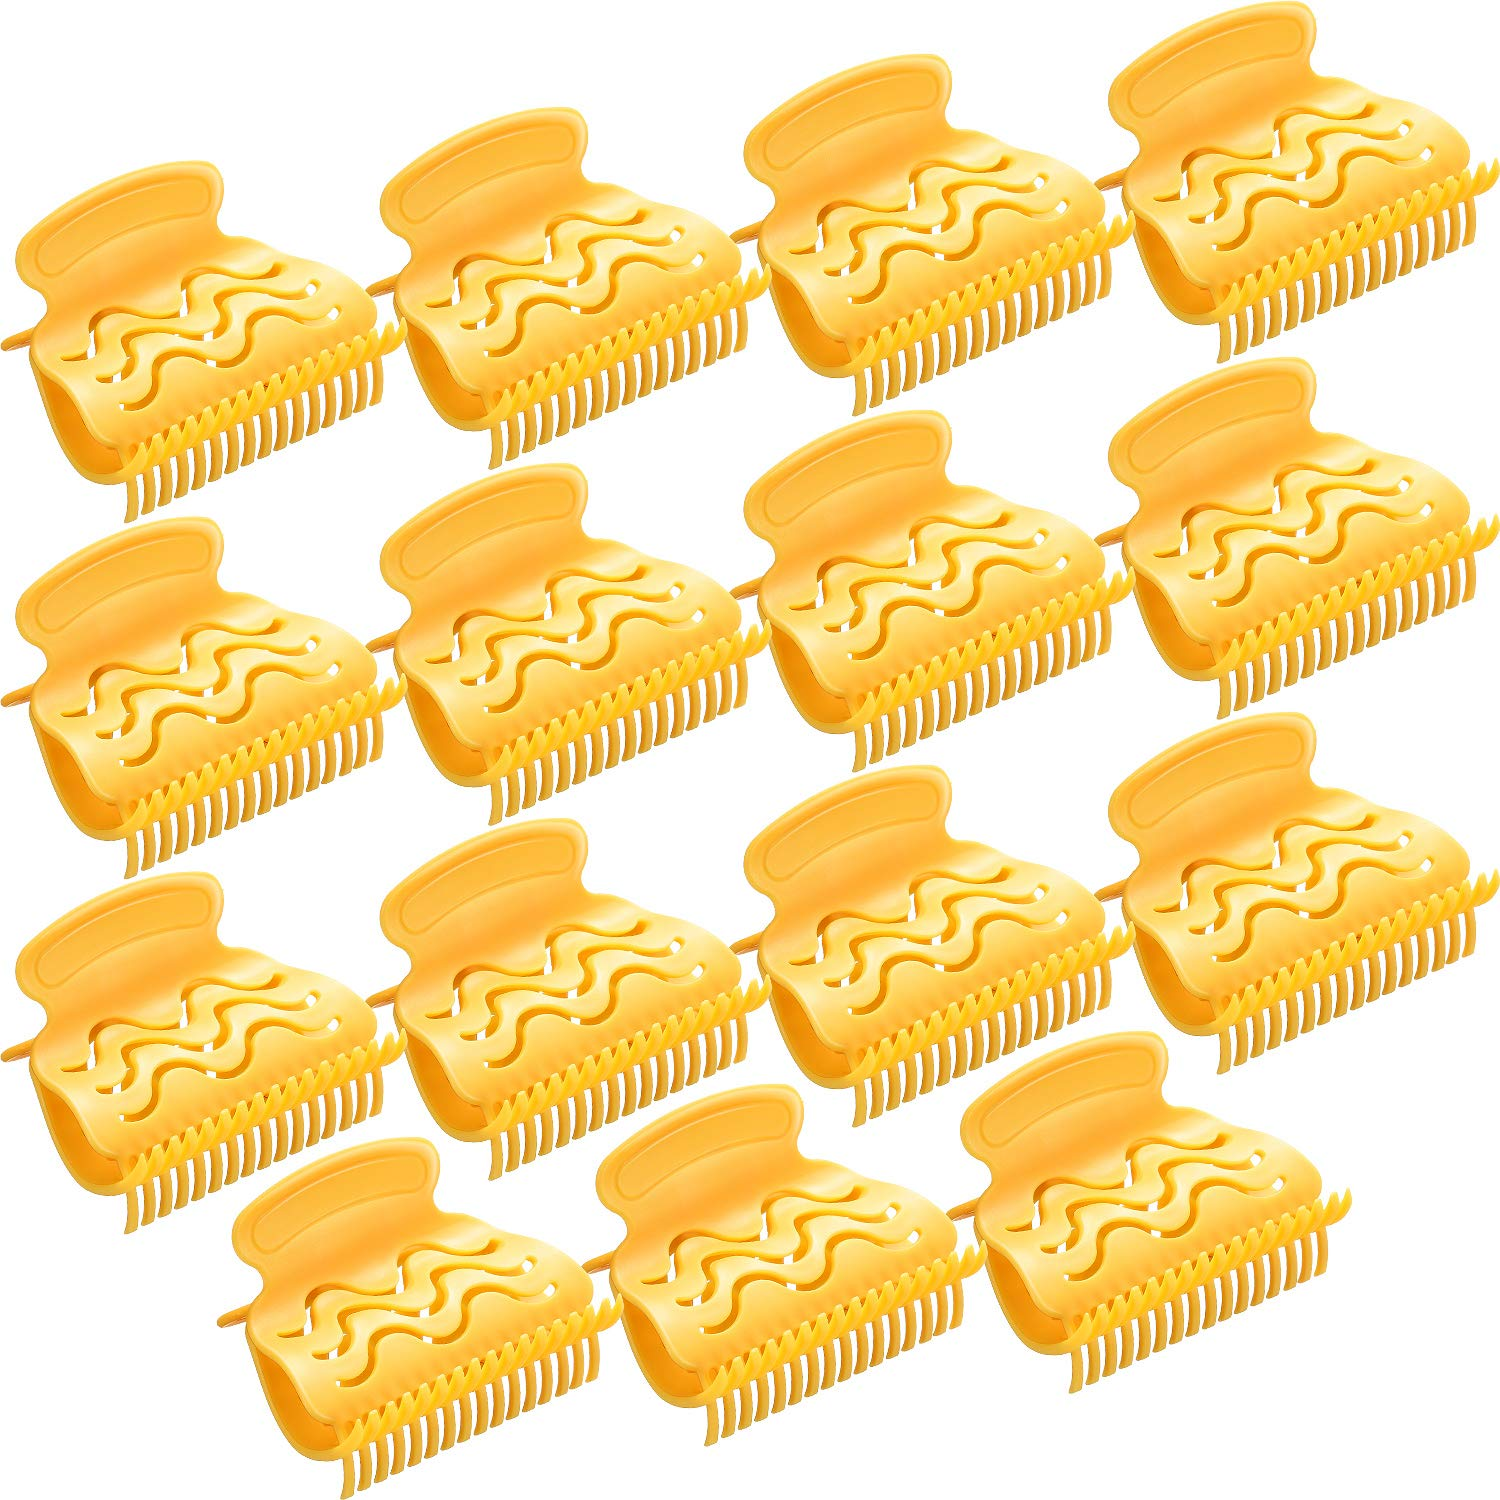 Hot Roller Clips Hair Curler Claw Clips Plastic Hair Rollers for Small, Medium, Large and Jumbo Hair Rollers (15 Packs, Style A)